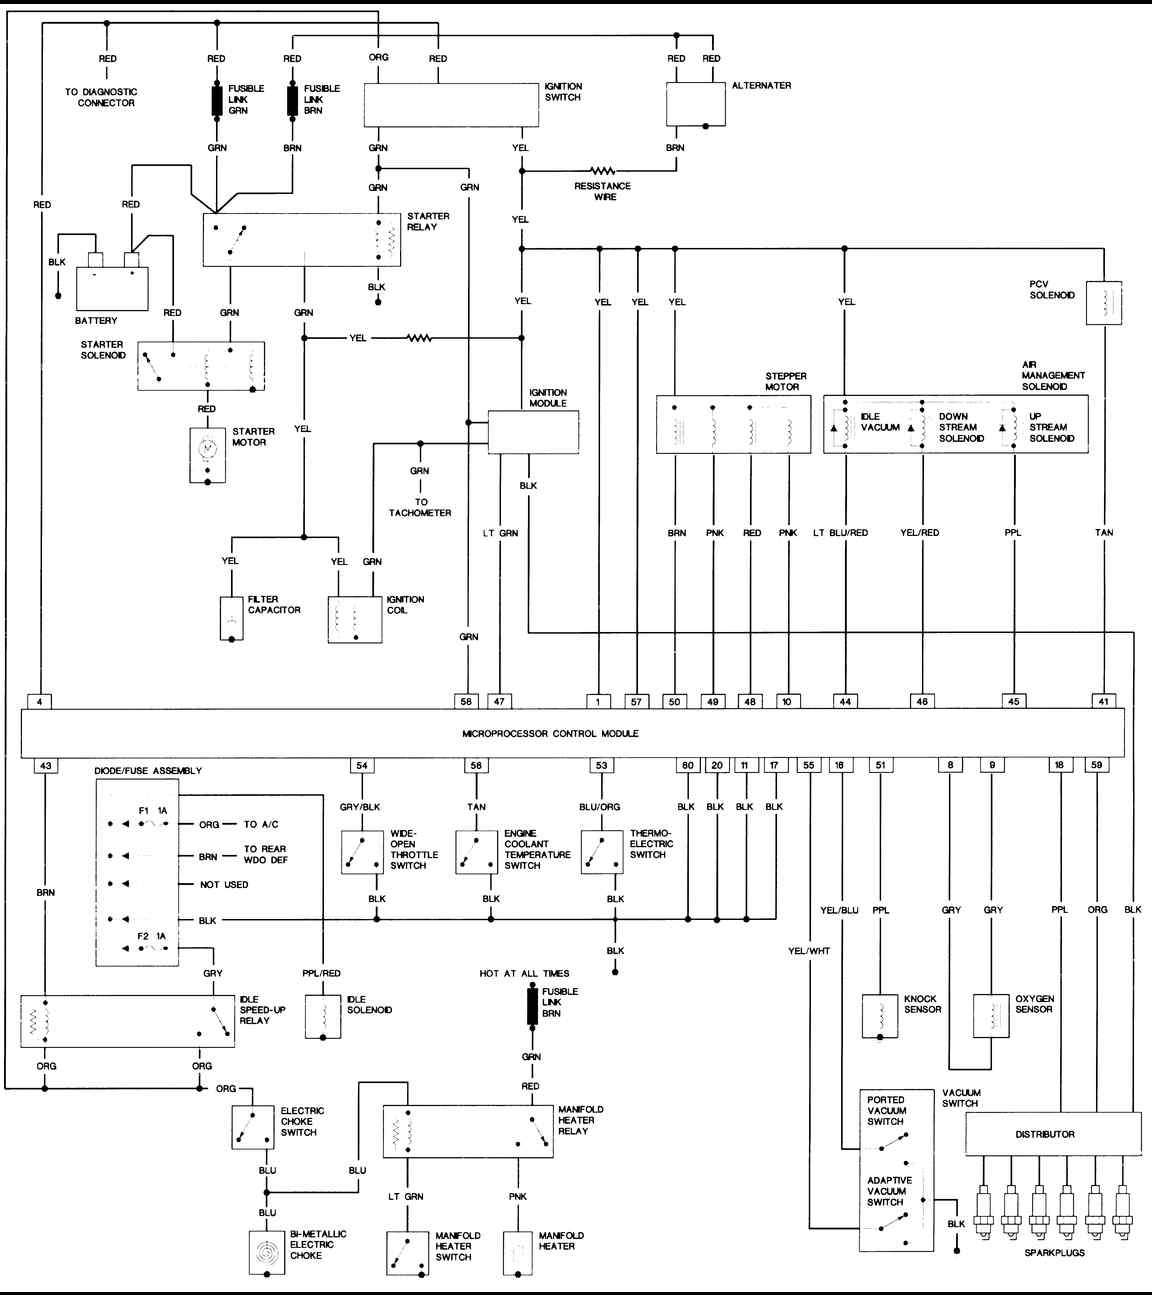 1987 jeep wrangler 4.2L engine 1987 jeep wrangler 4 2l engine(large) freeautomechanic jeep wrangler wiring diagram free at bakdesigns.co